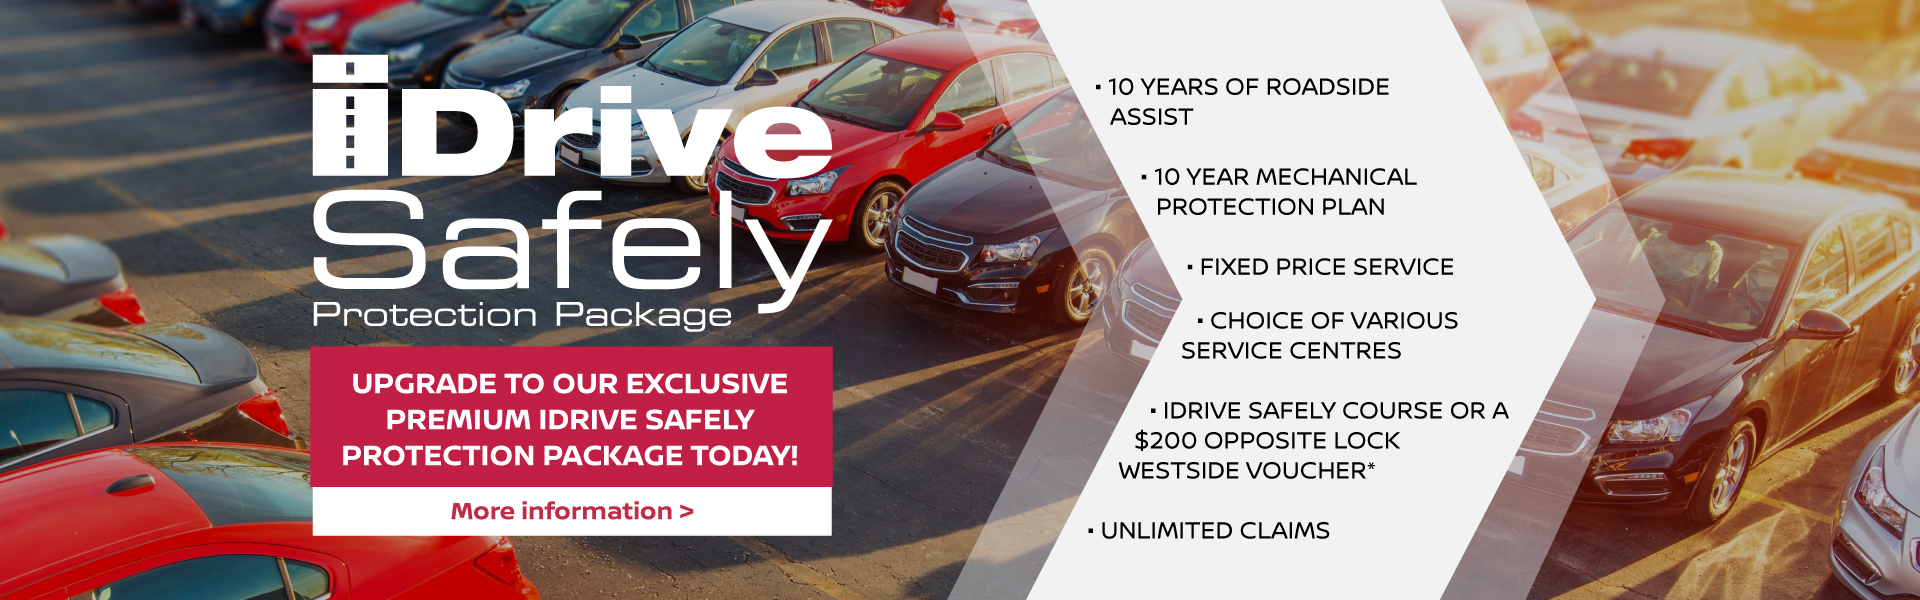 iDrive Safely Protection Package